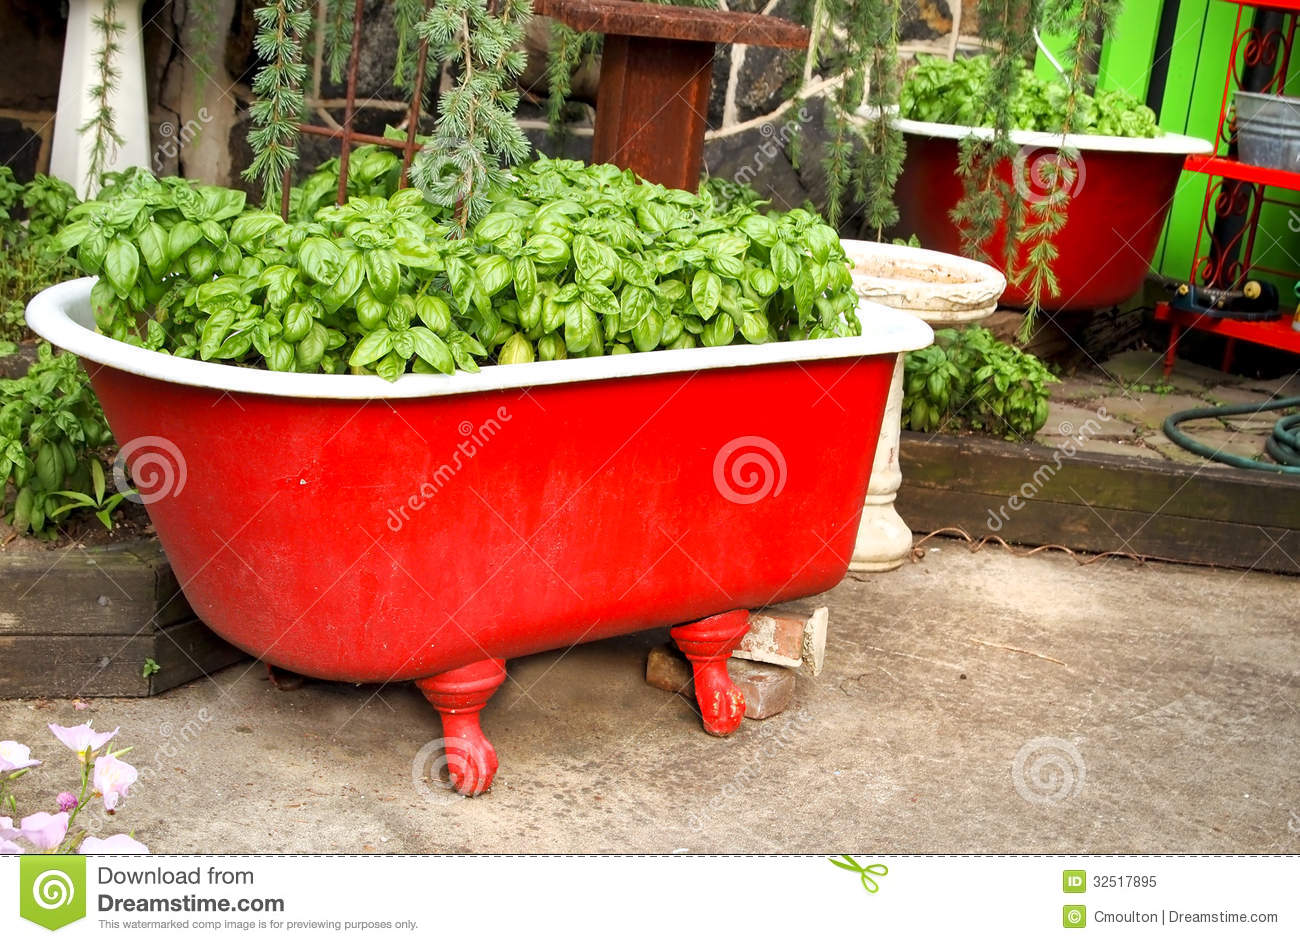 Basil In A Red Bathtub Royalty Free Stock Photo Image 32517895